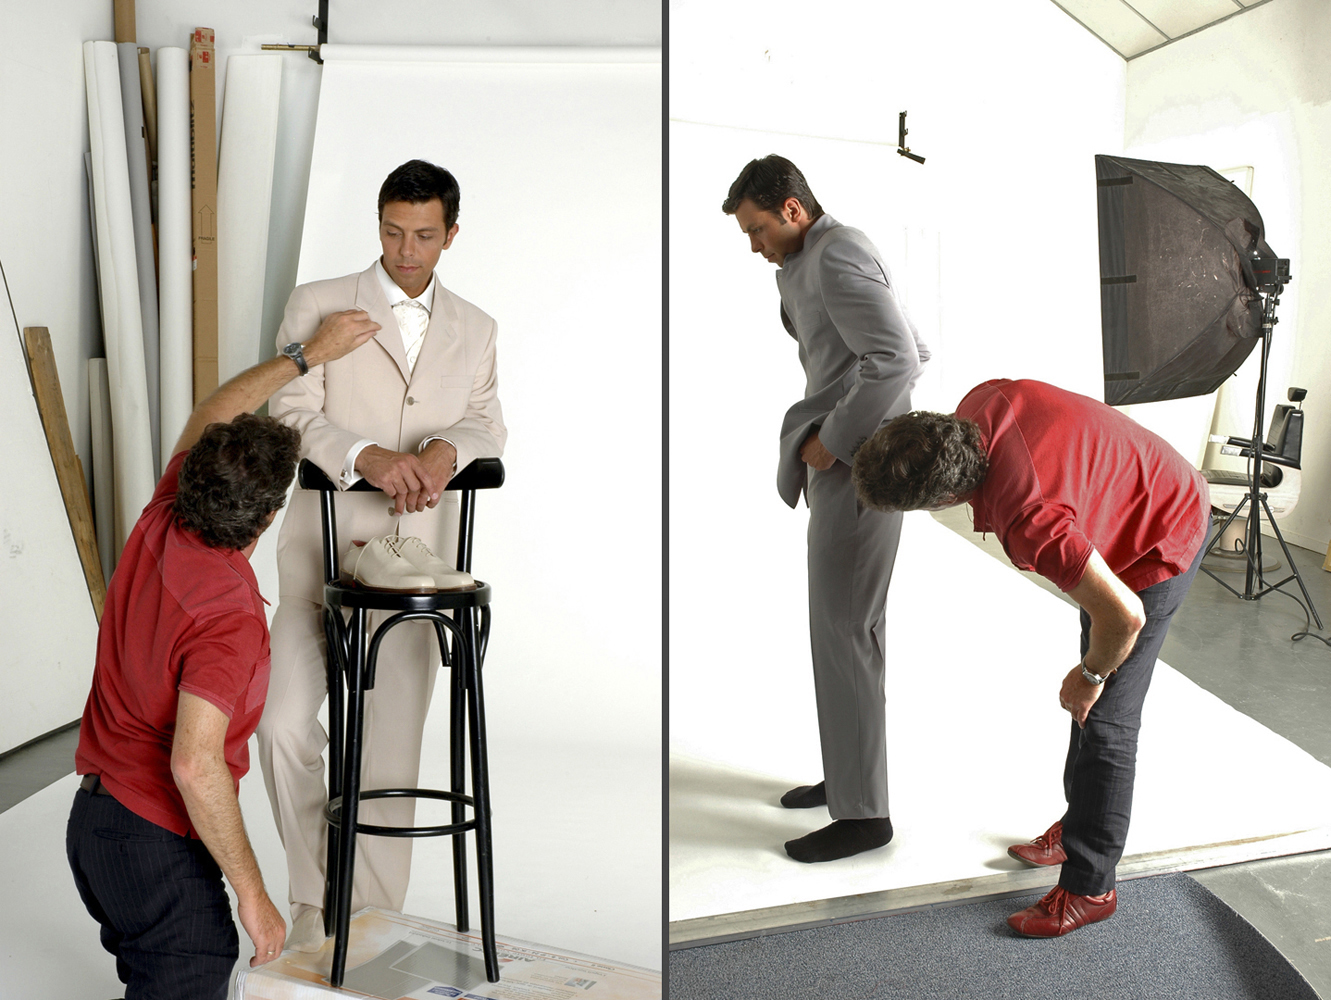 SADEV, mode homme, Nantes - Making-of studio - Pascal GUIRAUD